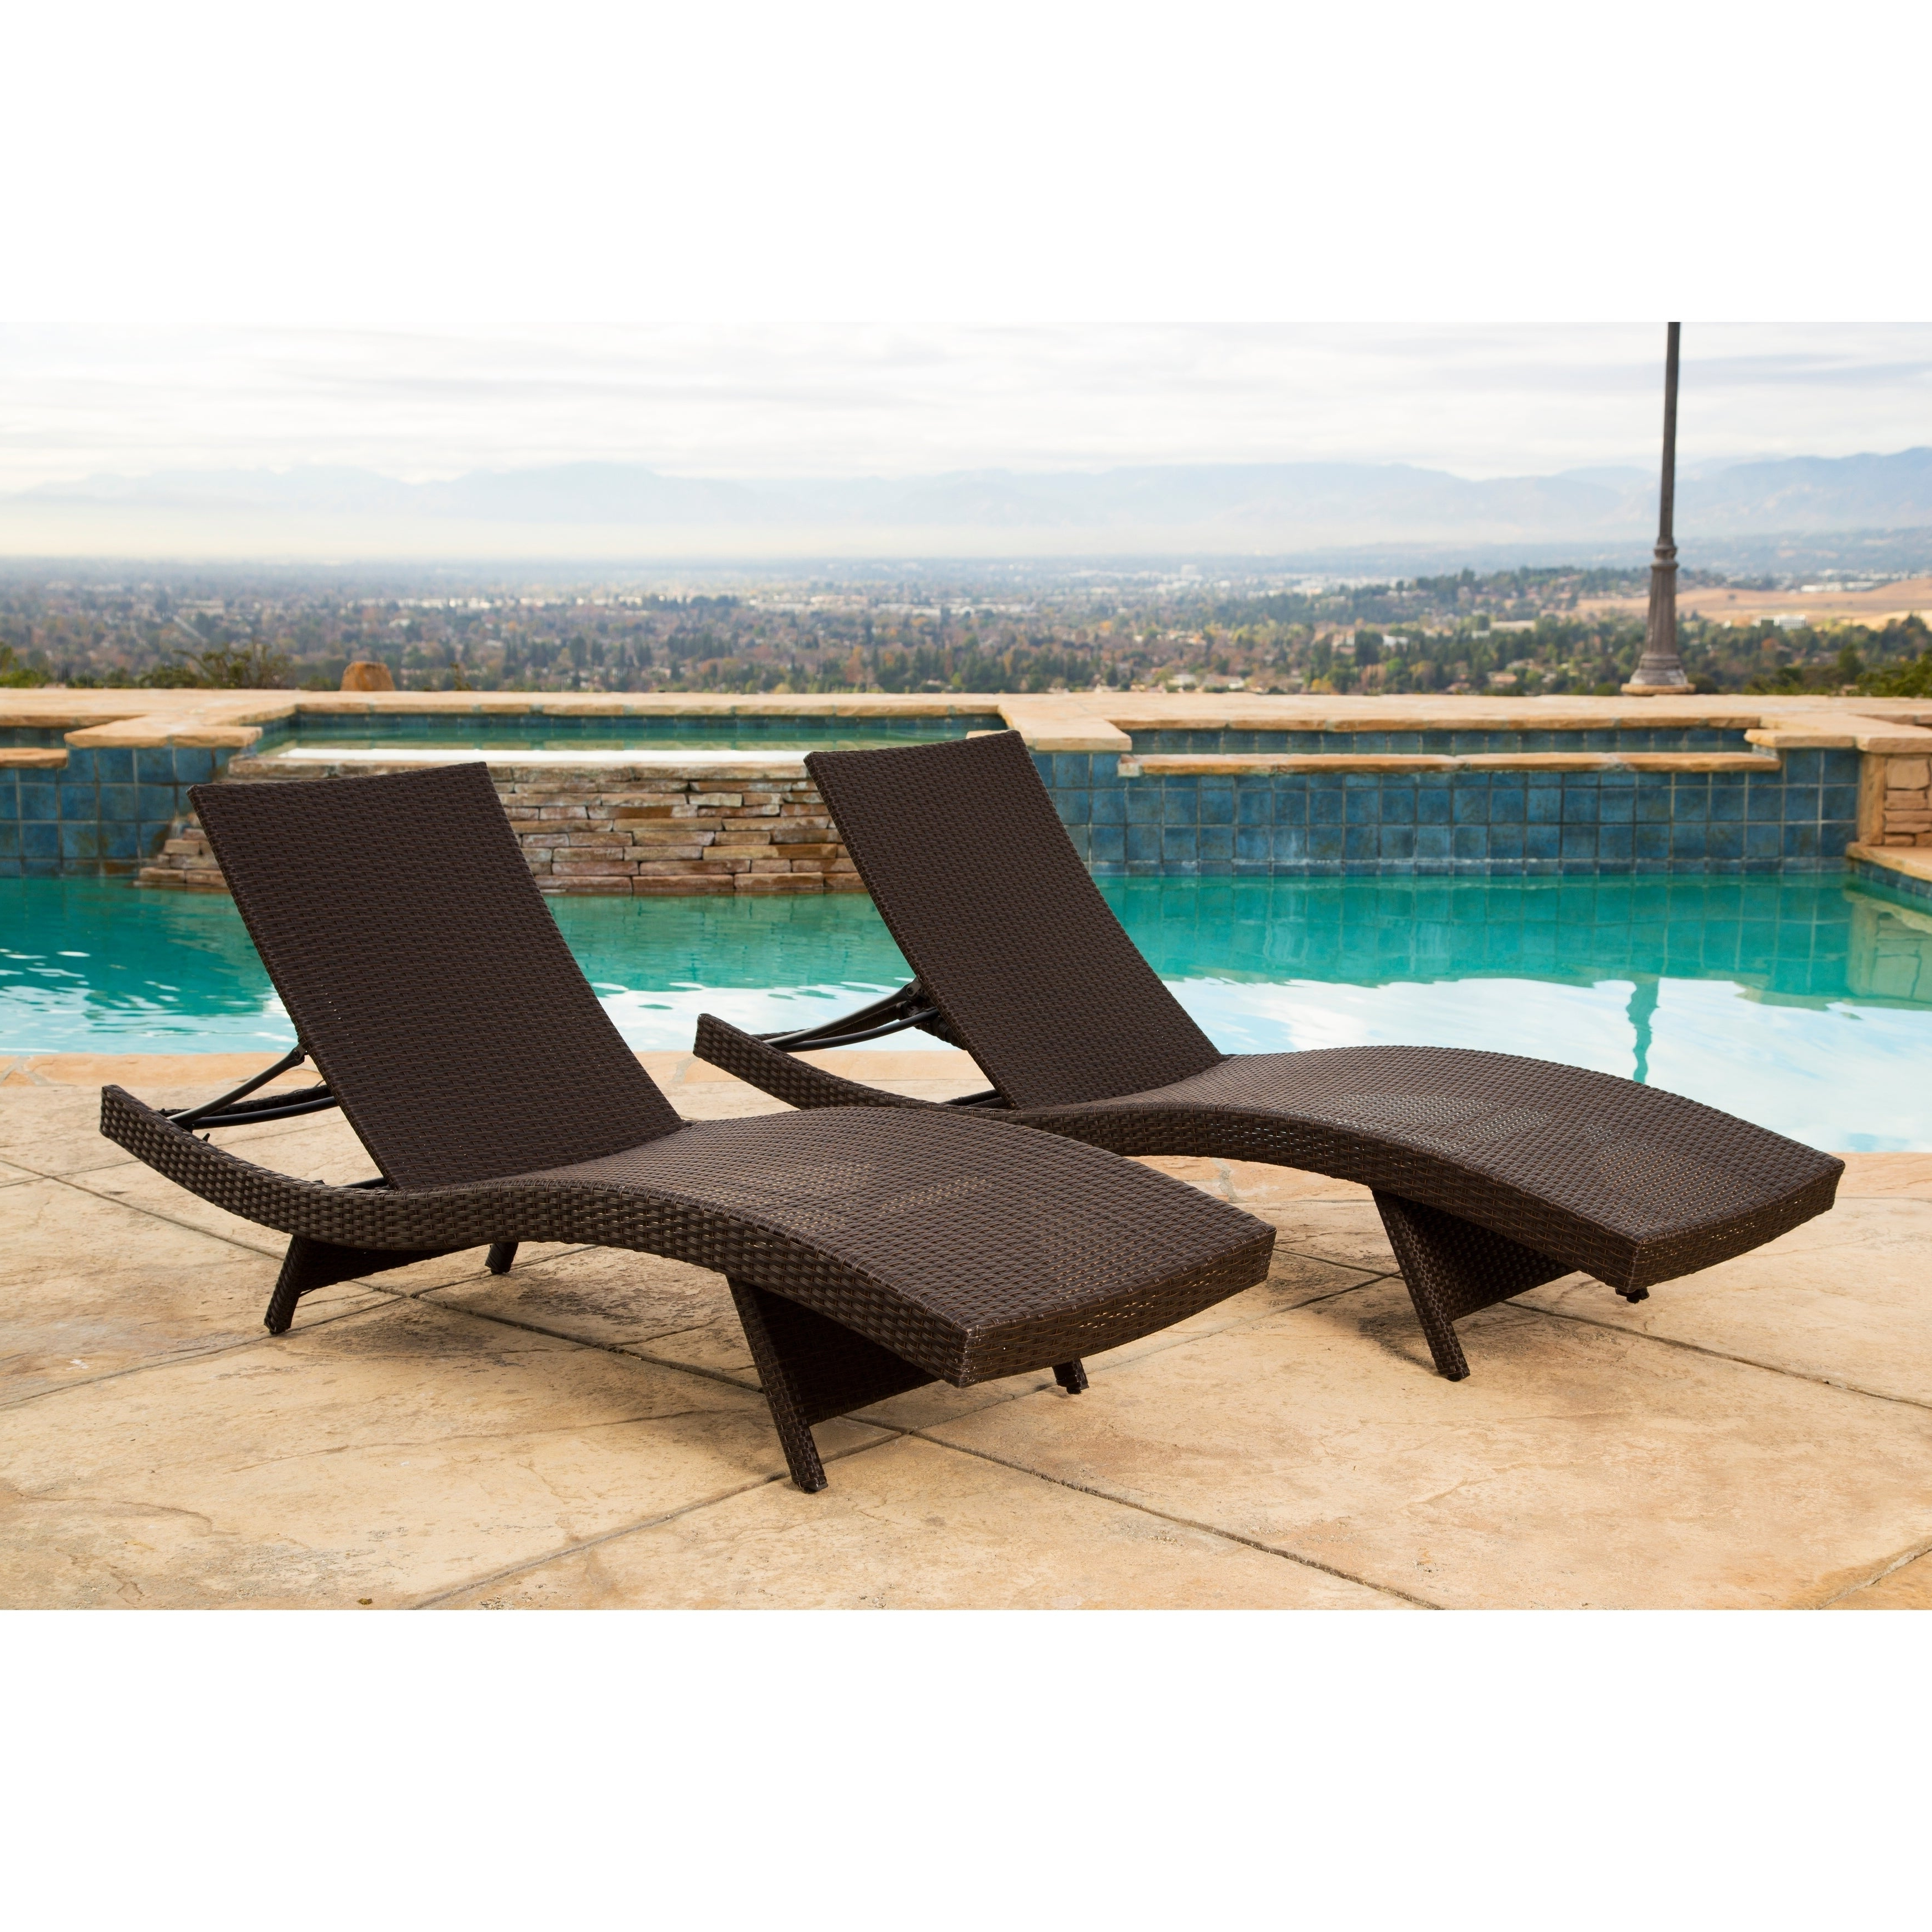 Kauai Outdoor Wicker Chaise Lounges For Well Known Abbyson Palermo Outdoor Dark Brown Wicker Chaise Lounge (Set Of 2) (View 6 of 25)